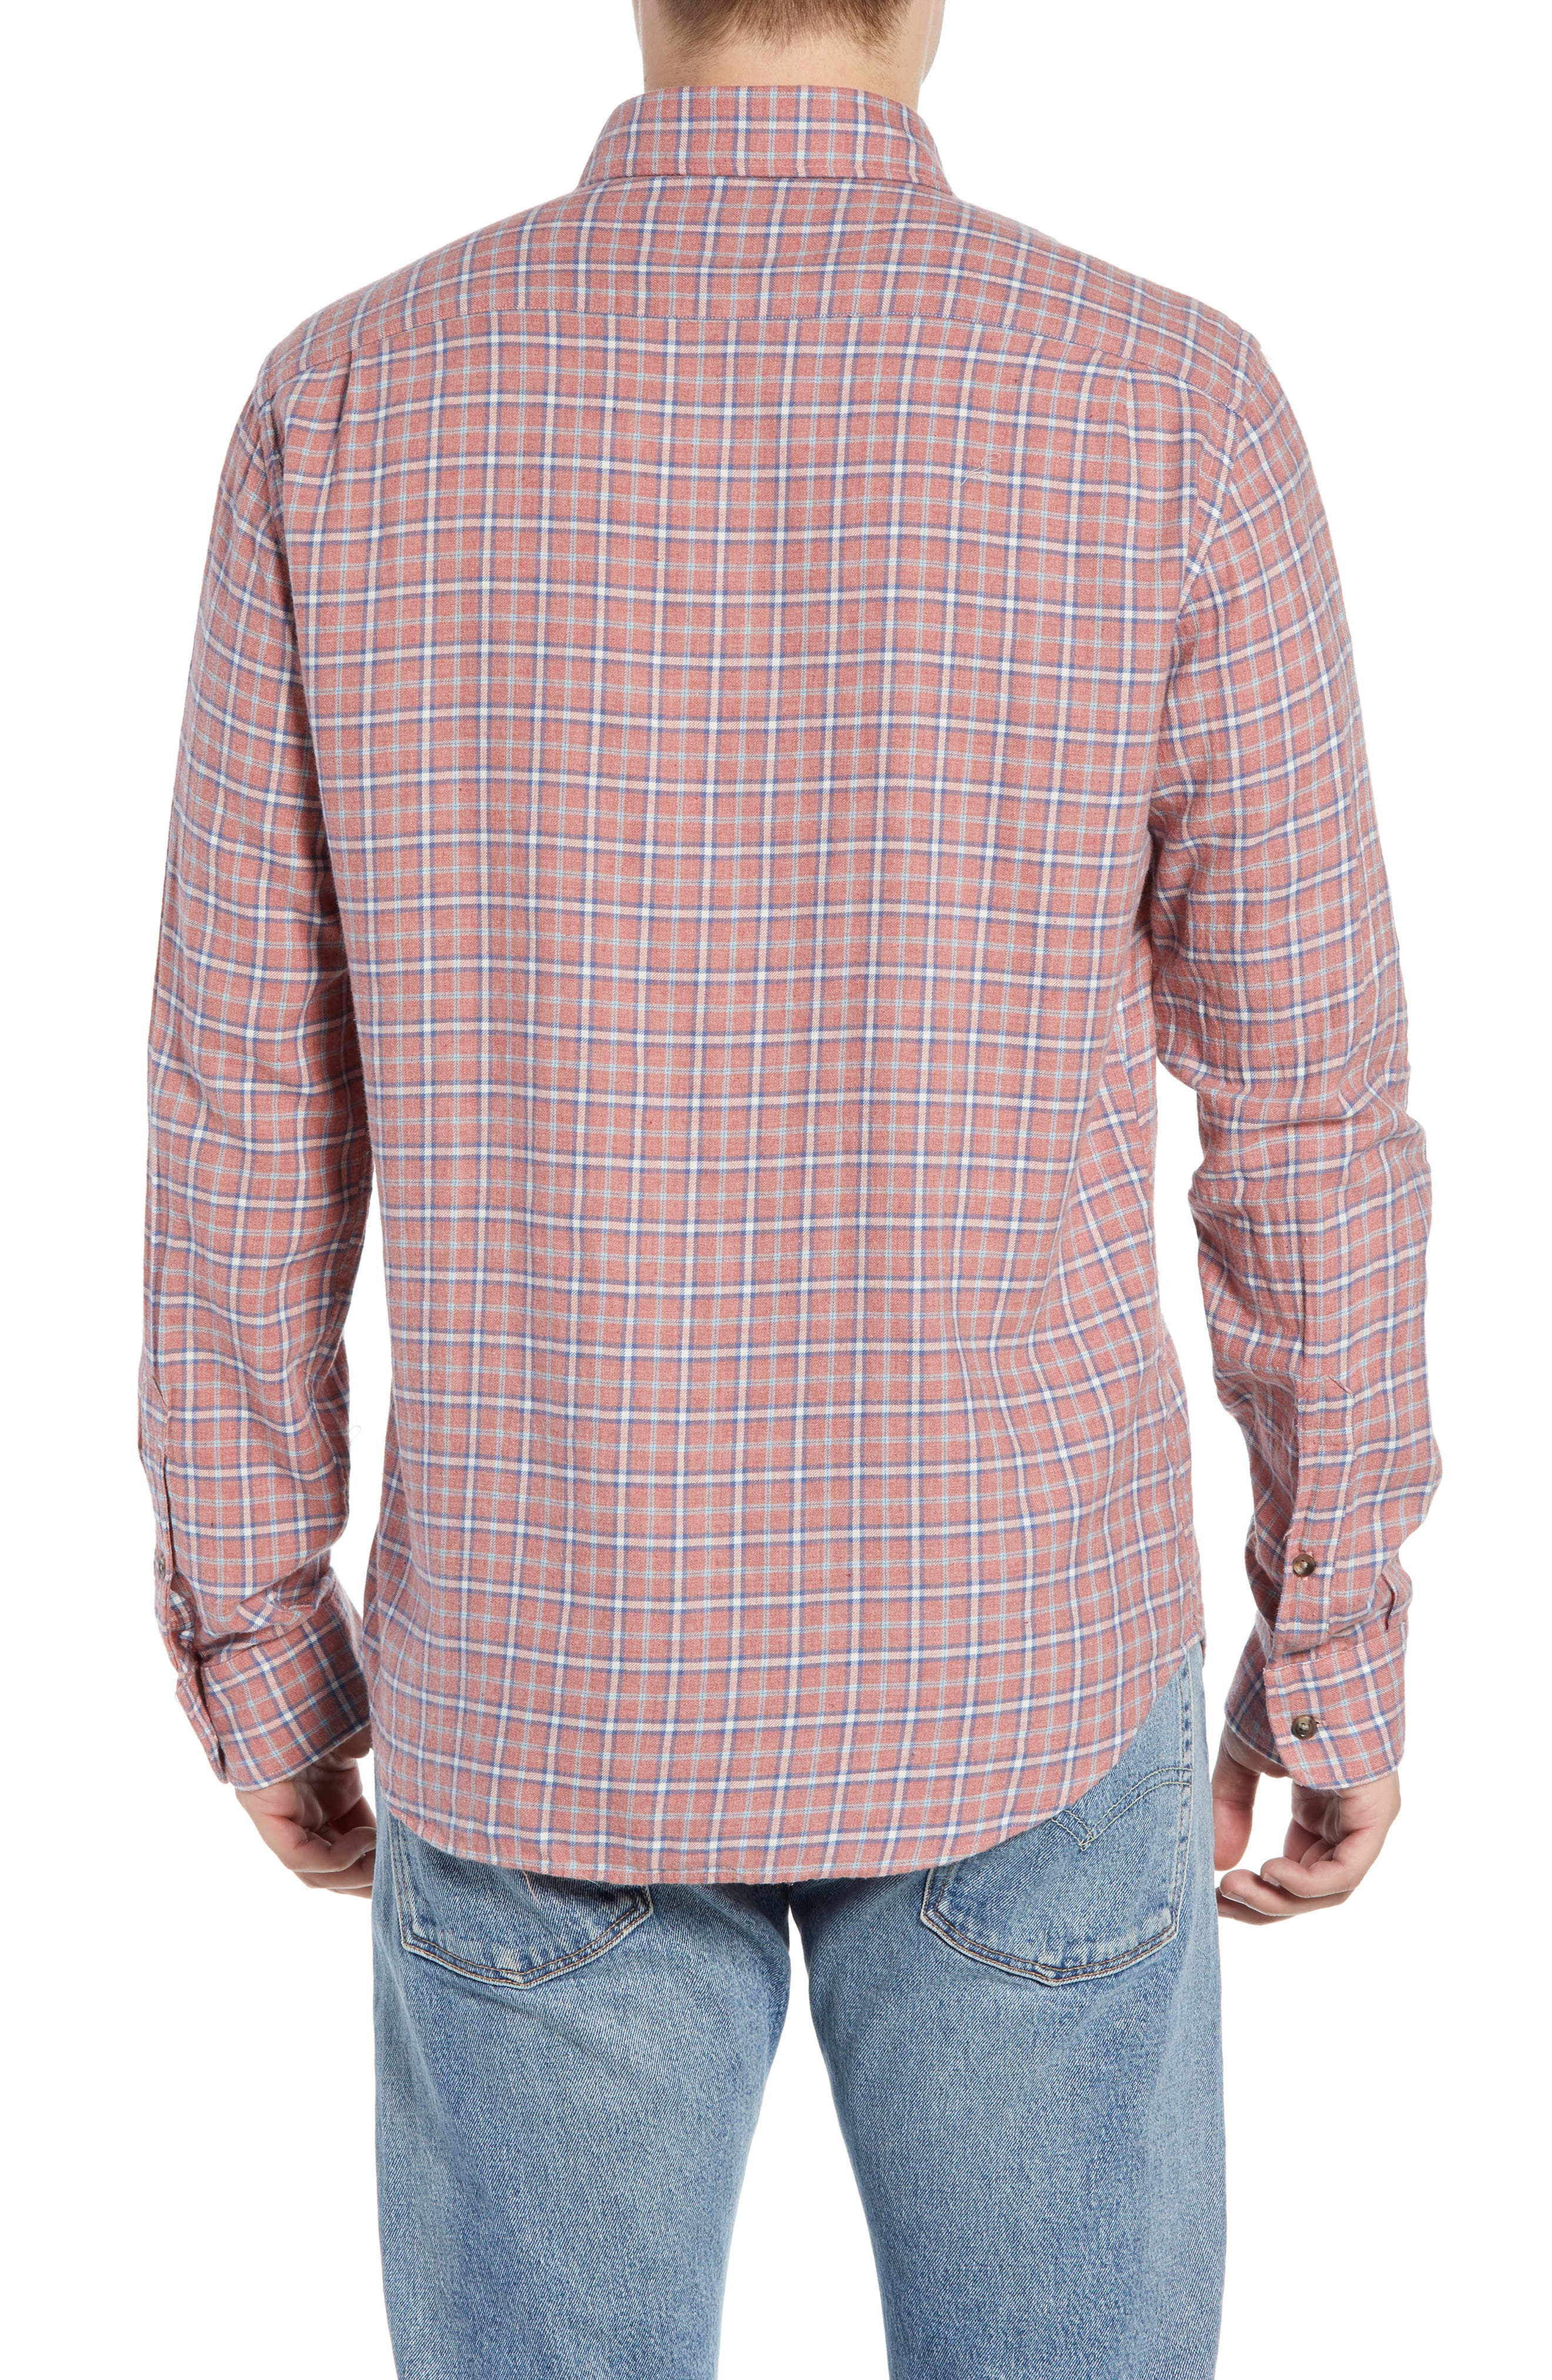 Pacific Check Organic Cotton Sport Shirt,                             Alternate thumbnail 3, color,                             HEATHER RED MULTI